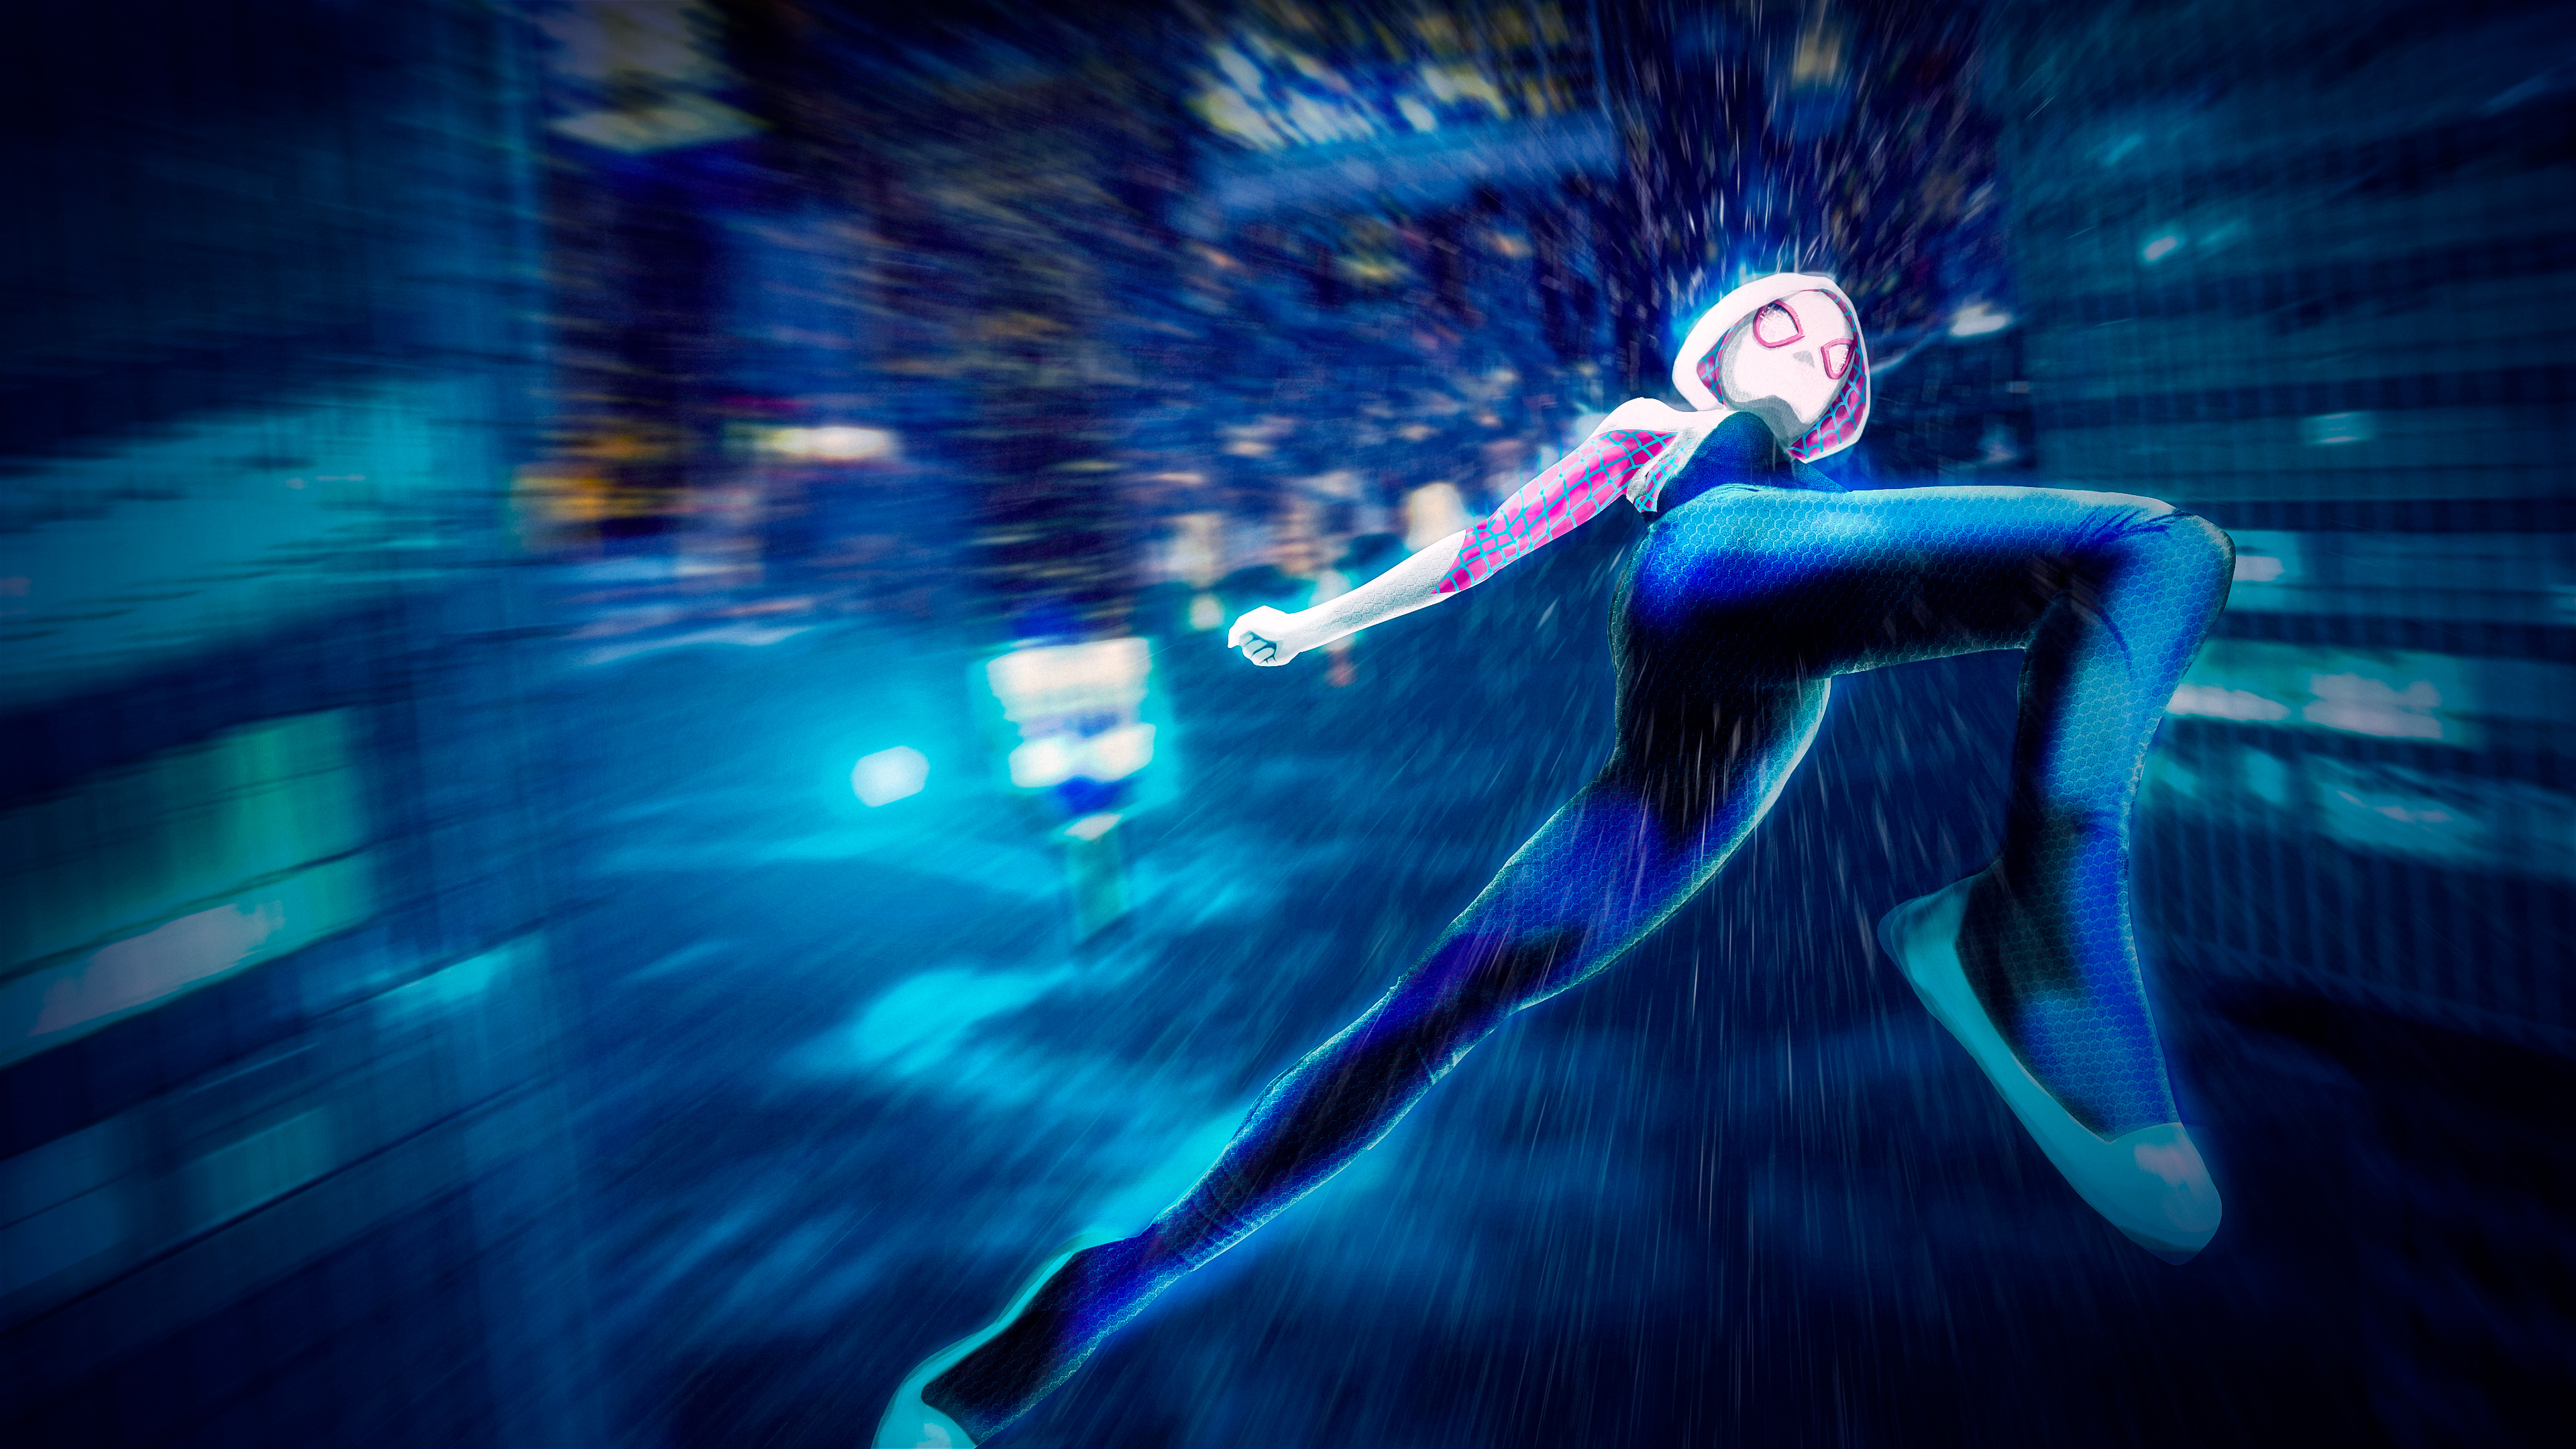 Wallpaper 4k Gwen Stacy Spider Man Into The Spider Verse 4k 4k